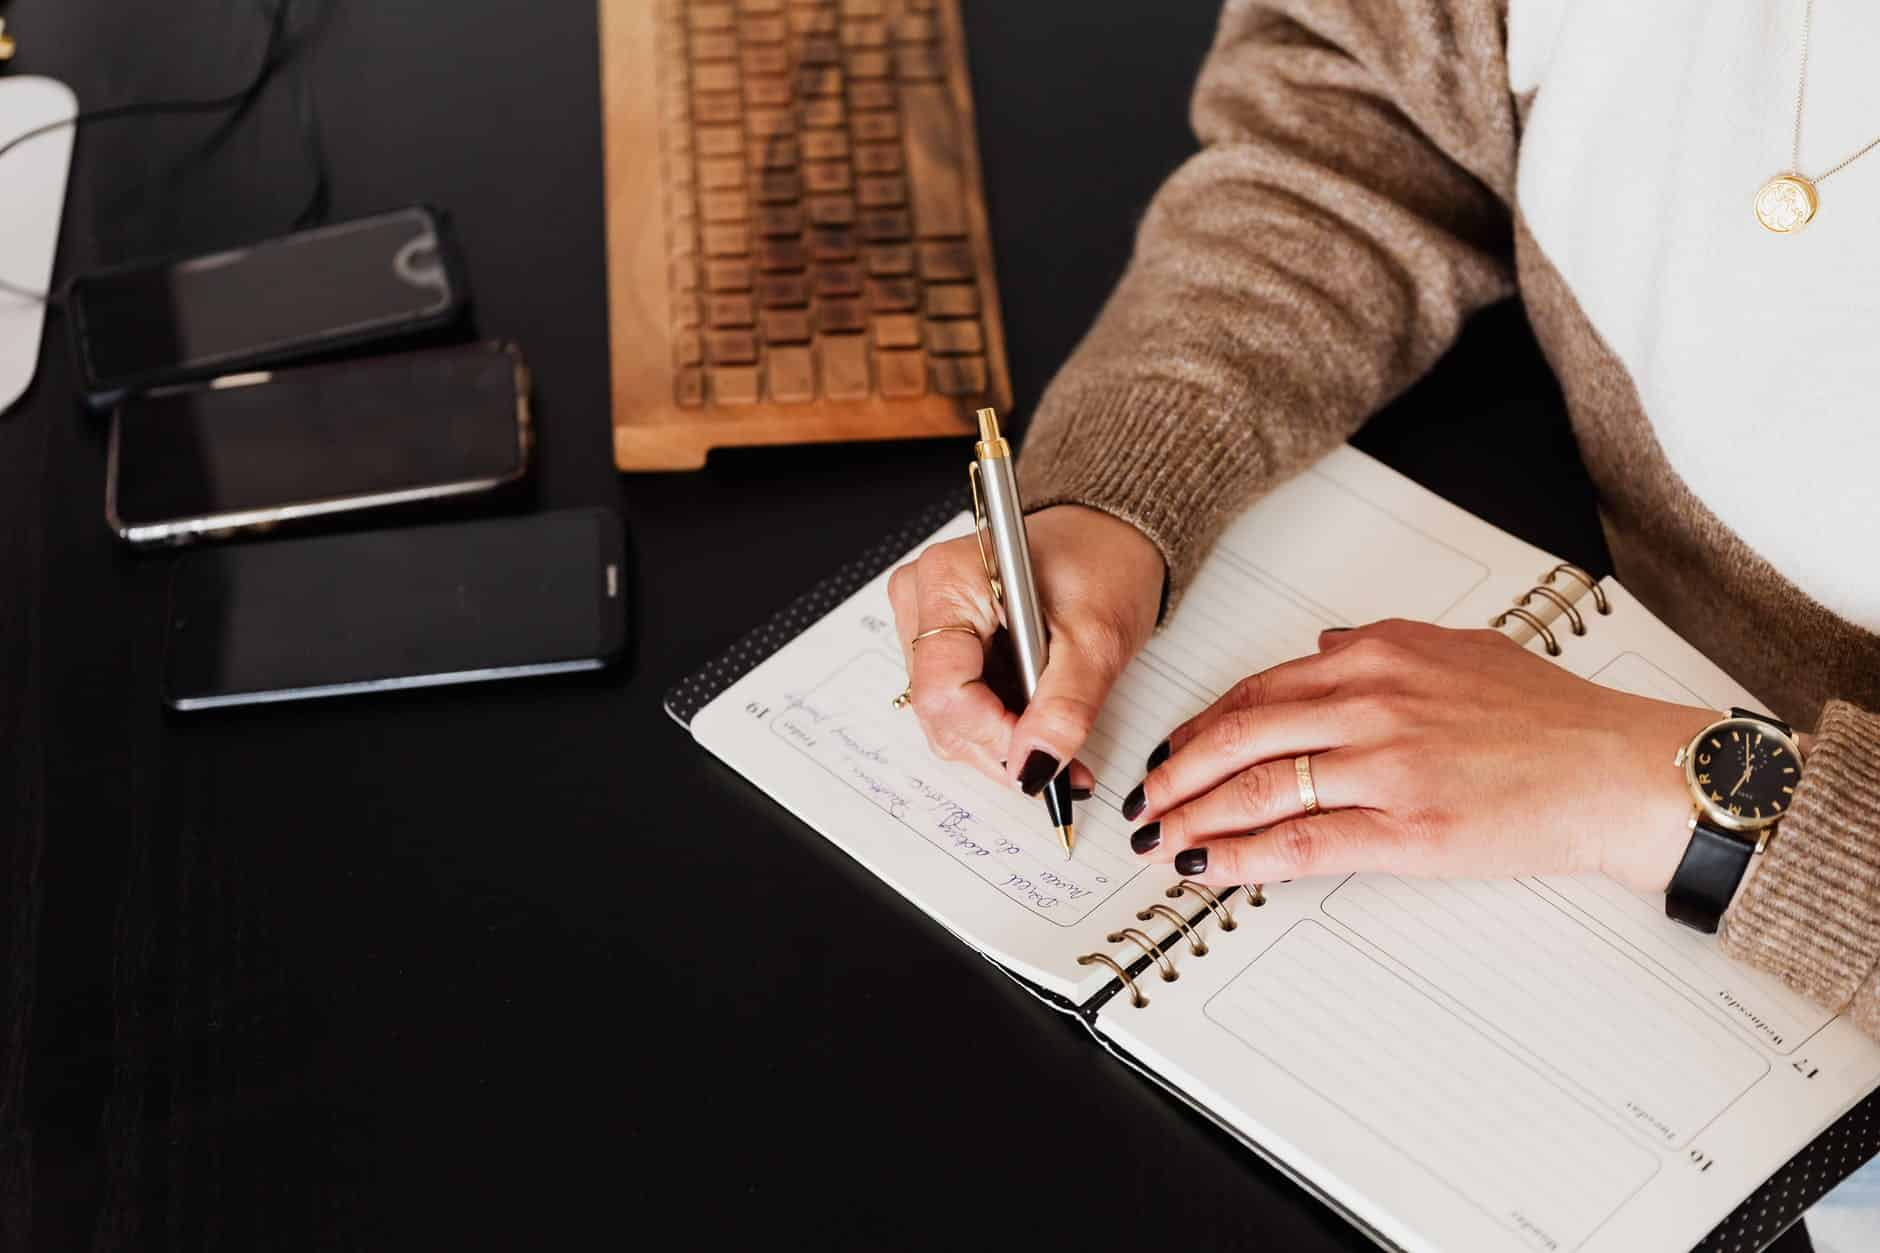 crop stylish woman writing in notebook